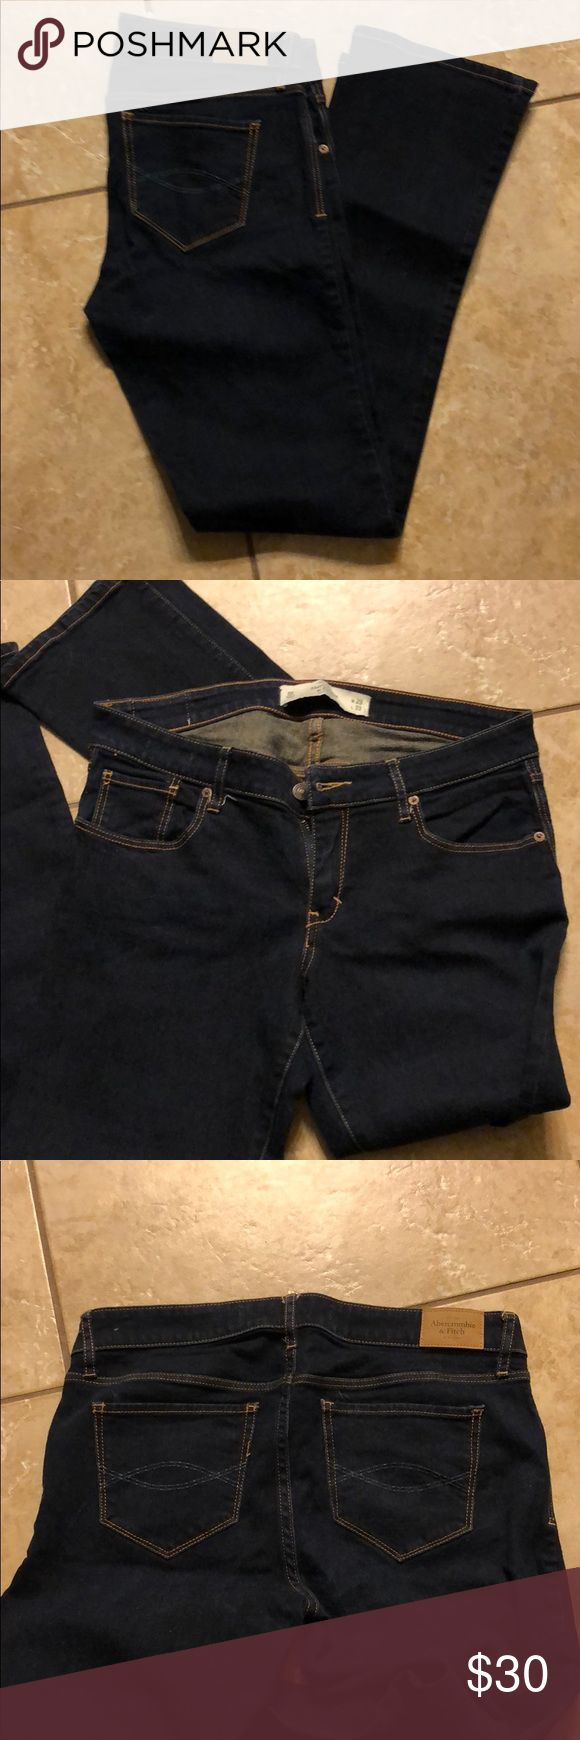 Abercrombie Jeans Excellent used condition! Only worn a few times! These are the A&F boot style. They are a dark wash Abercrombie & Fitch Jeans Boot Cut